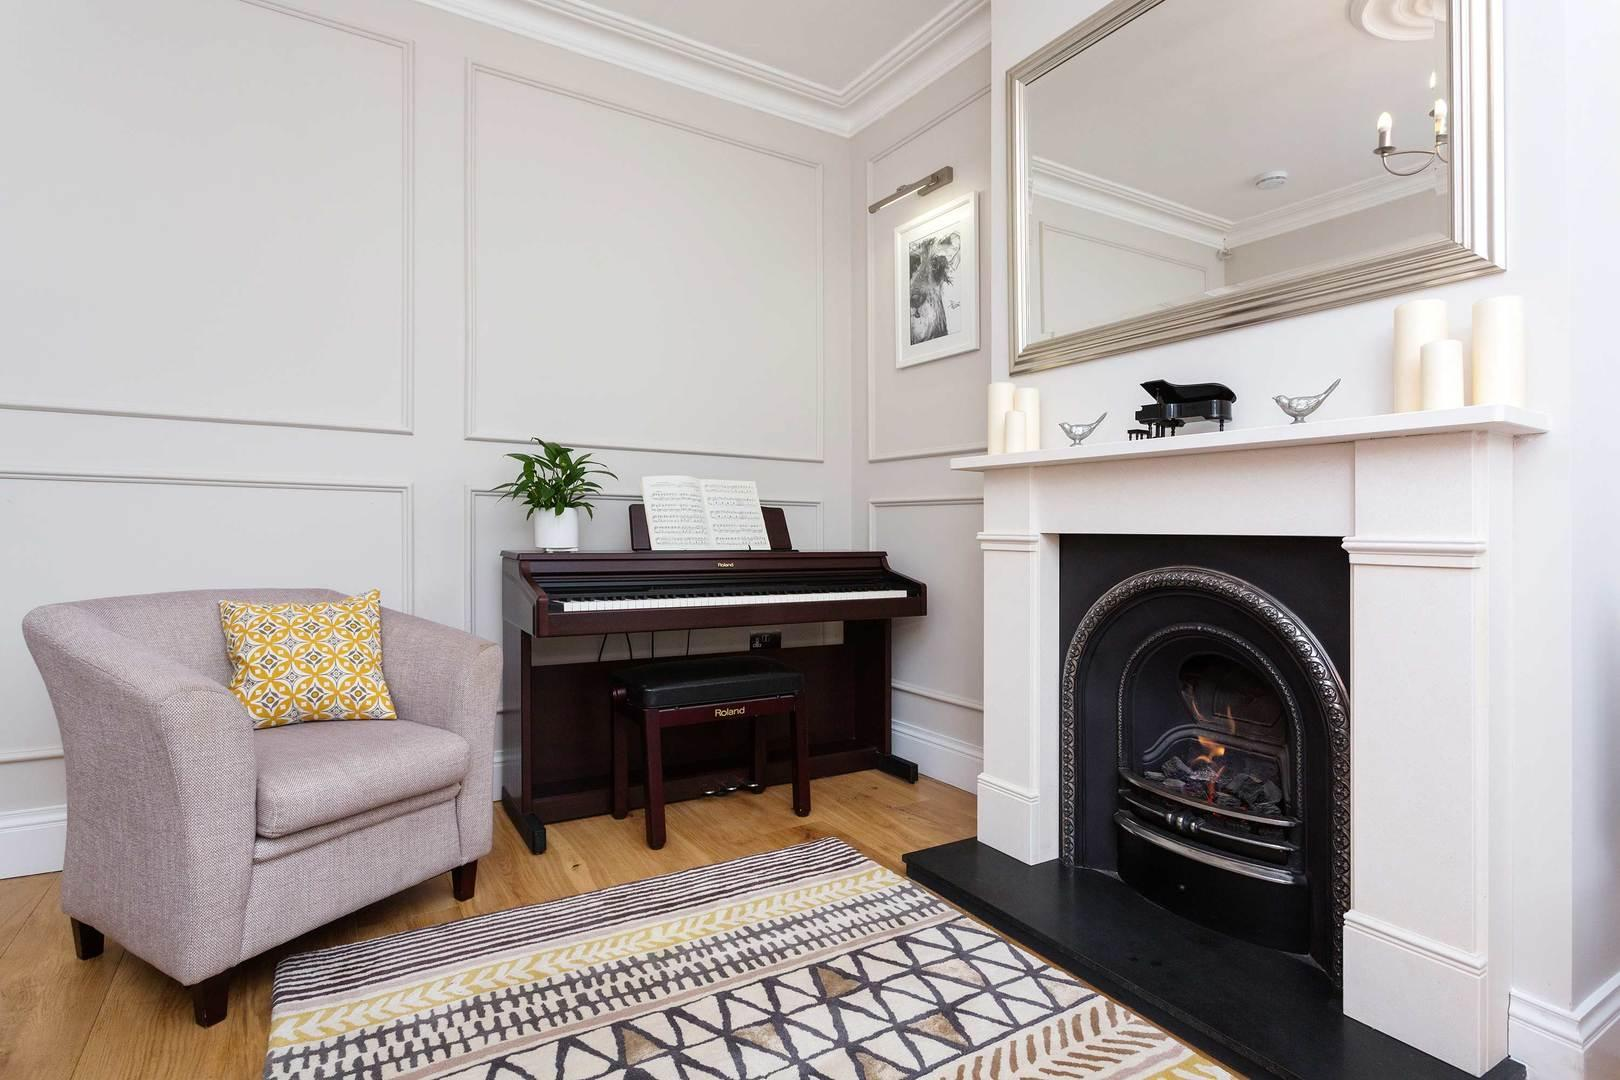 Property Image 1 - Stylish Chiswick Apartment with Large Social Spaces